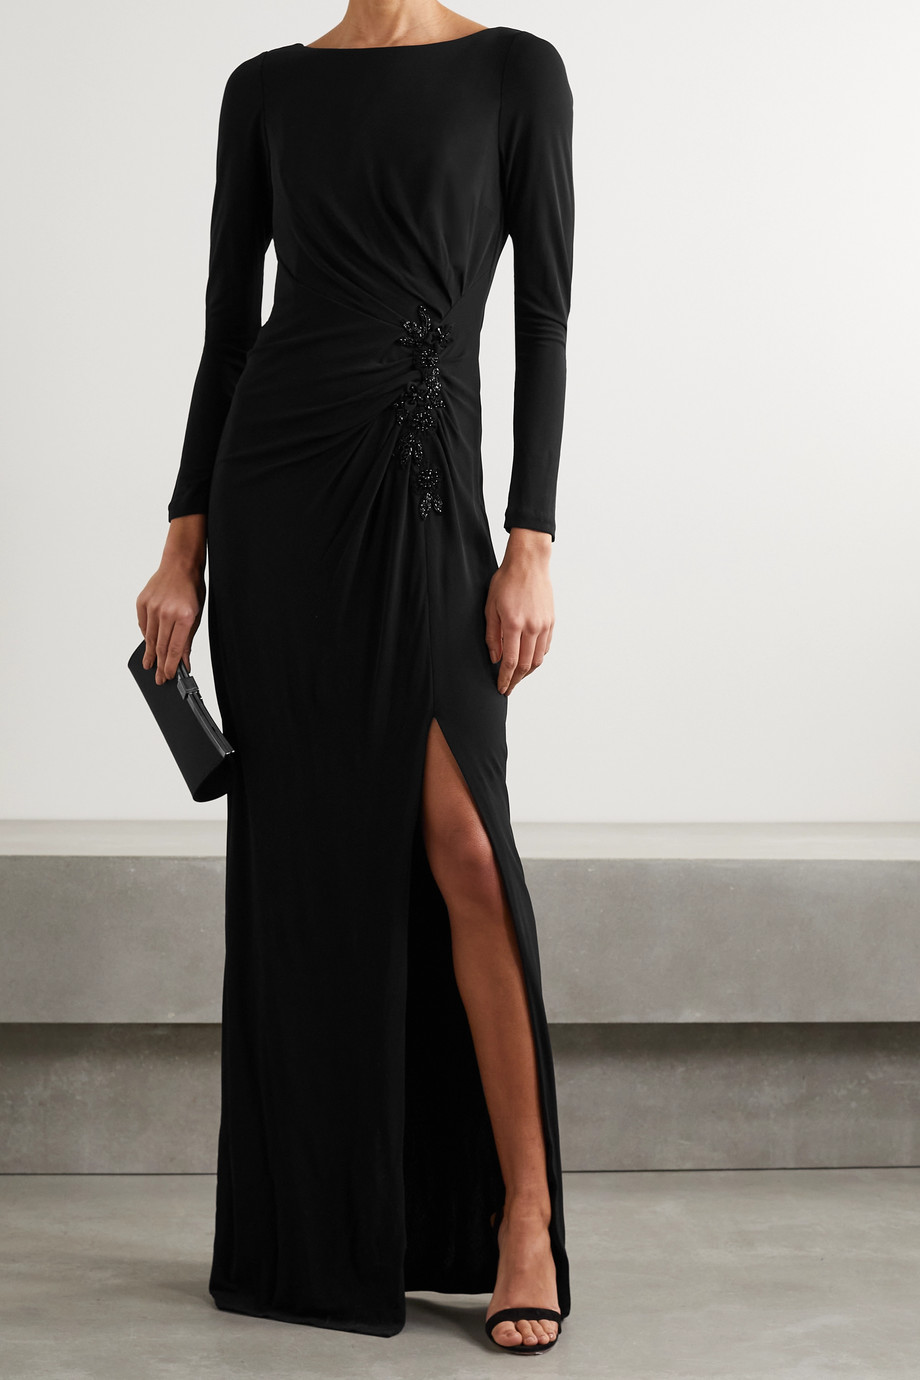 MARCHESA NOTTE Bead-embellished appliquéd ruched stretch-jersey gown